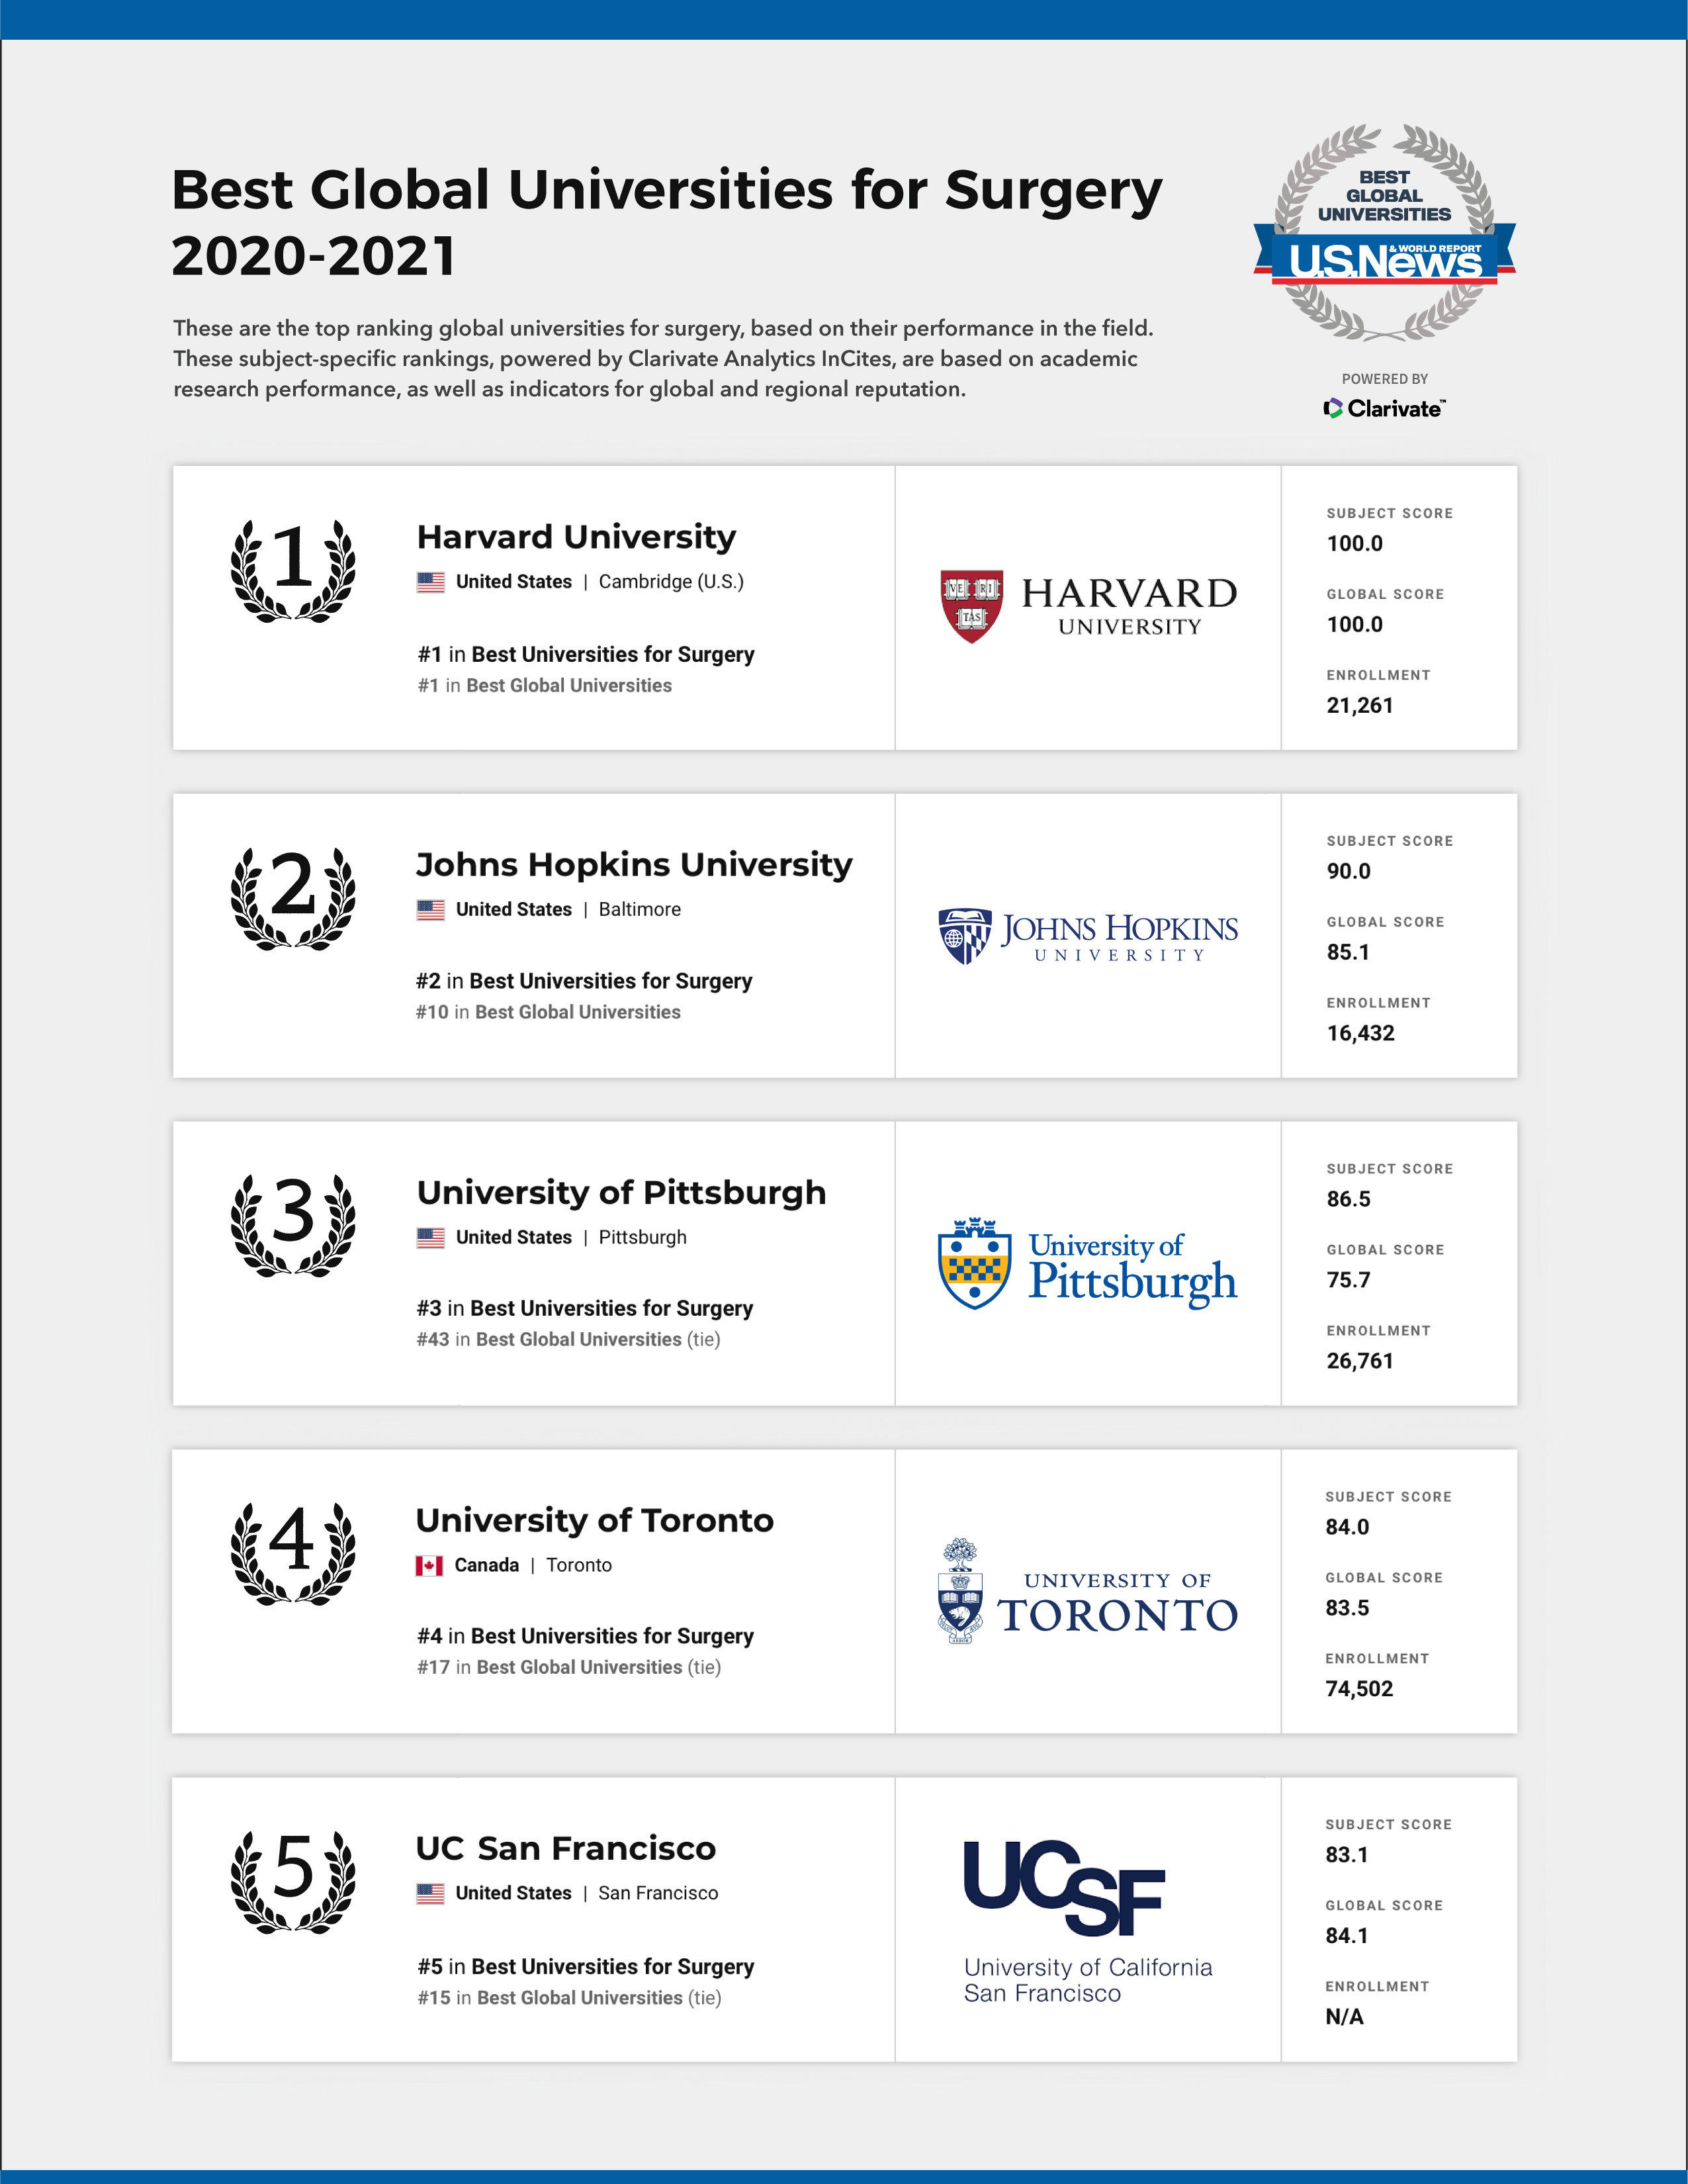 best global universities for surgery 2020-2021